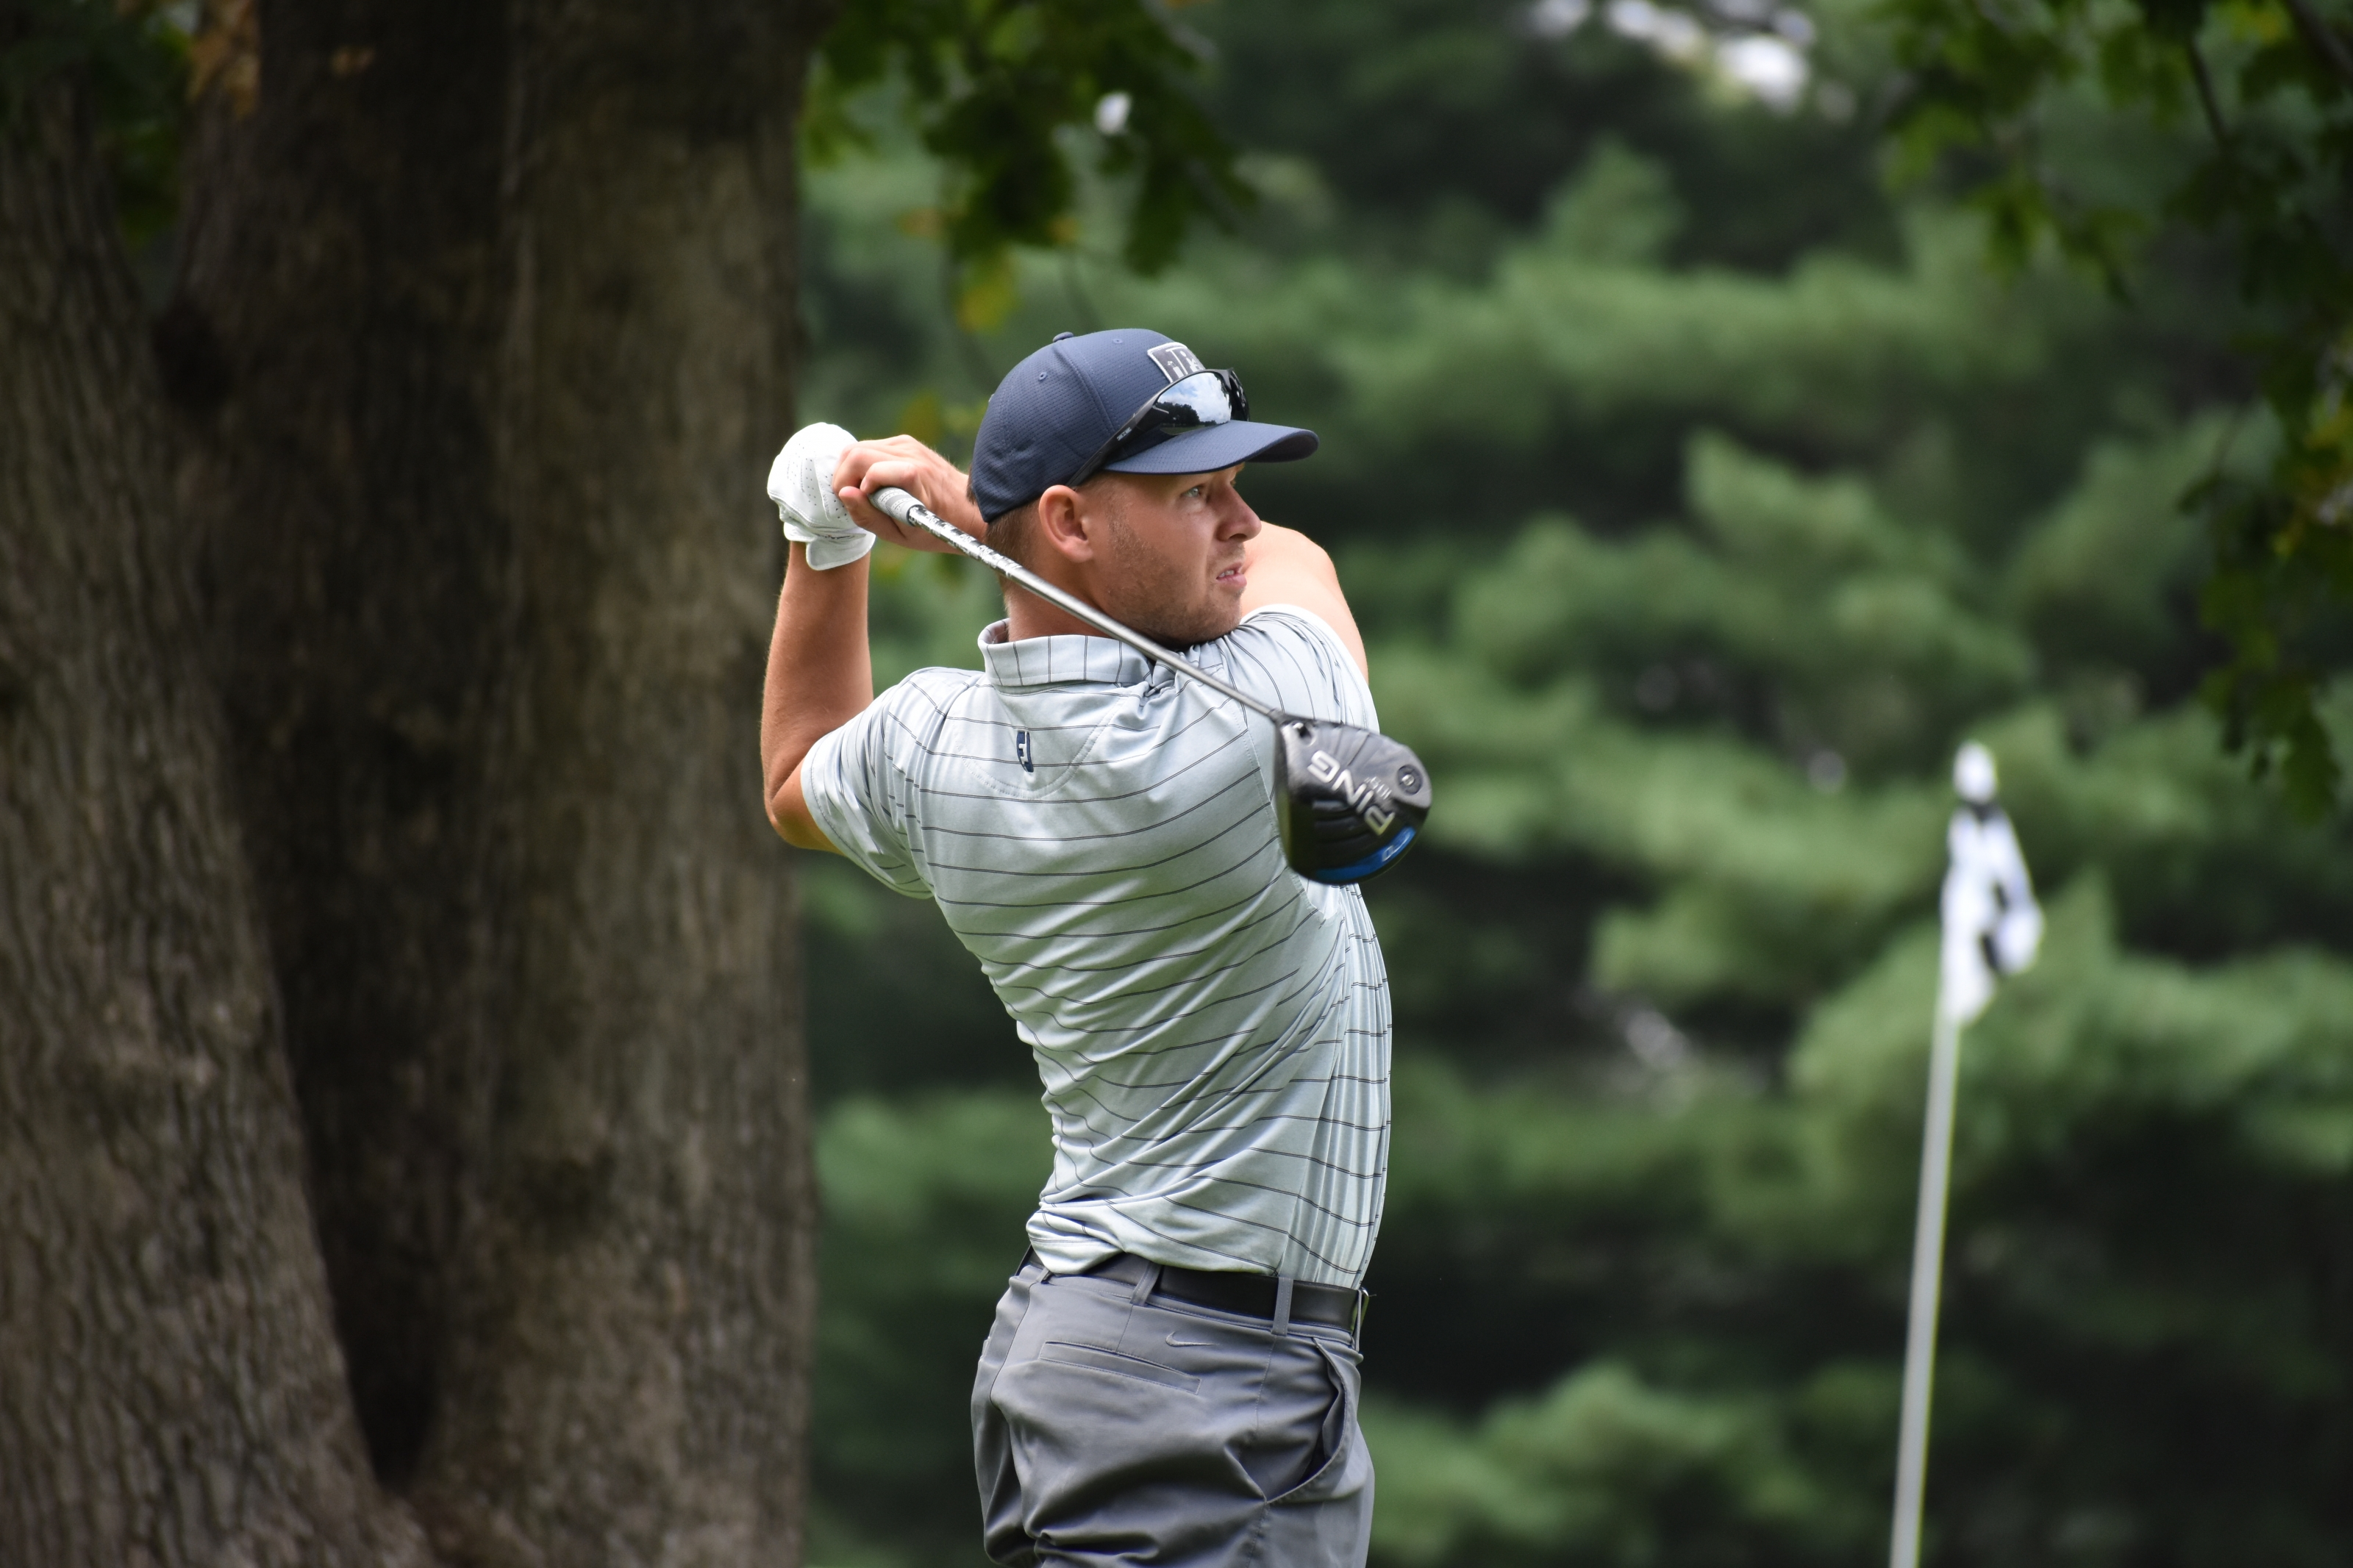 Simpson Soars to the Top, 68 Lands Him Atop Leaderboard Heading to Final Day of Stroke Play Championship